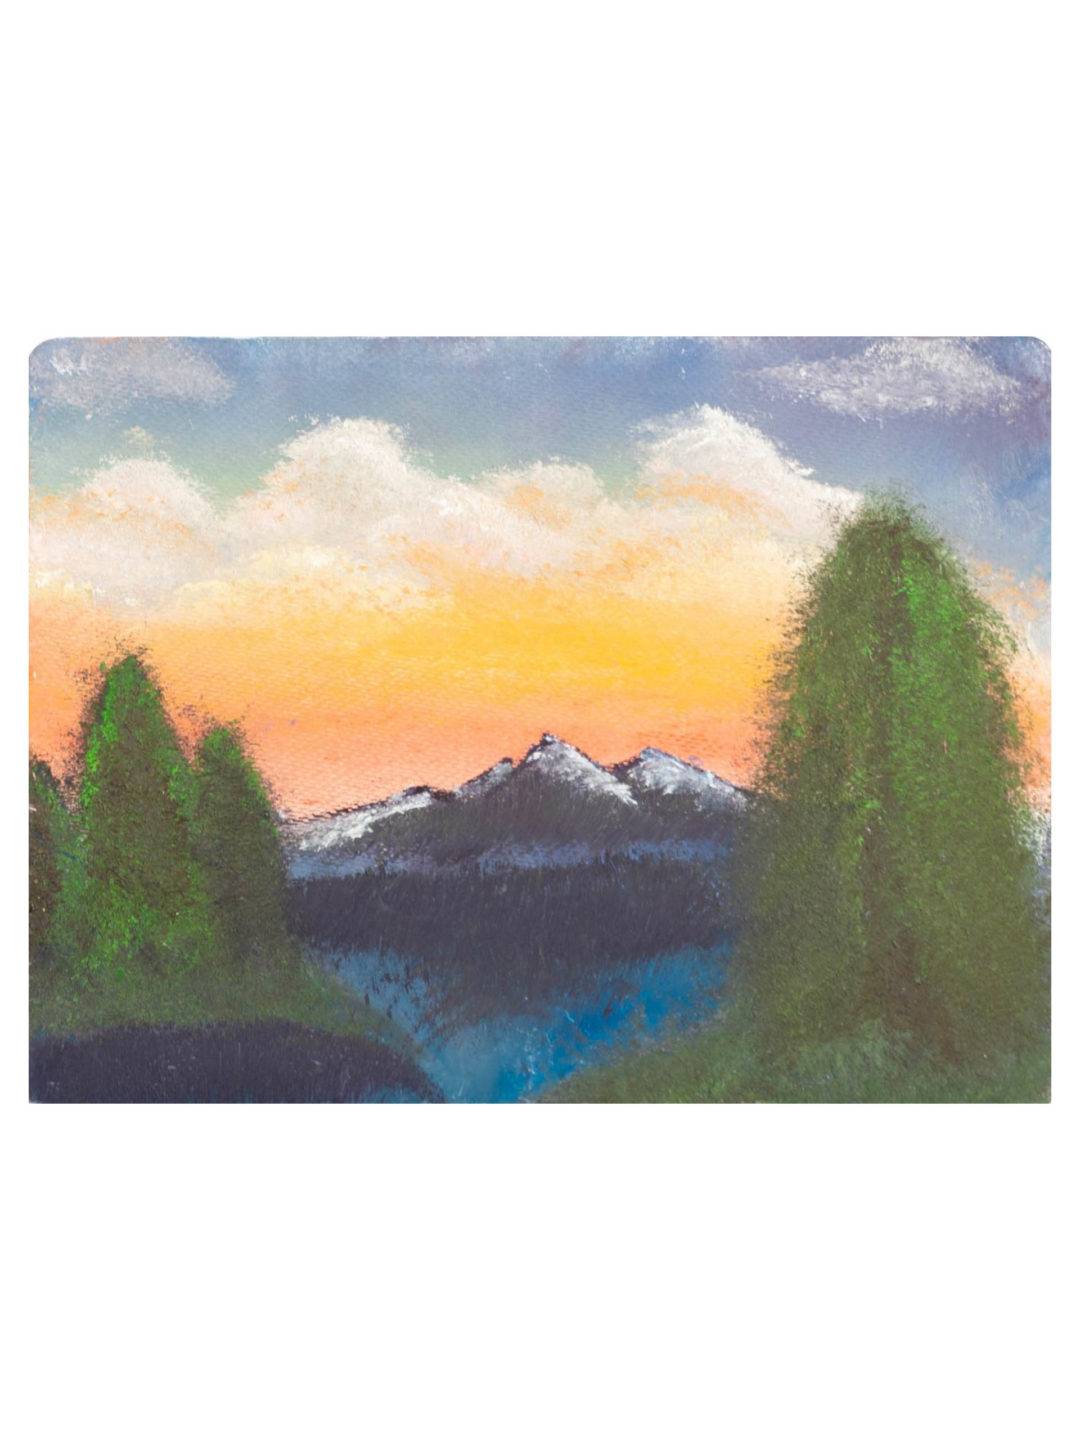 This painting consist of Thick acrylic paints used to paint on wood surface, using yellow, orange, red and white for the sky and clouds, using black and blue for the water, using black and white for the mountains, and using greens for the trees and grassland.